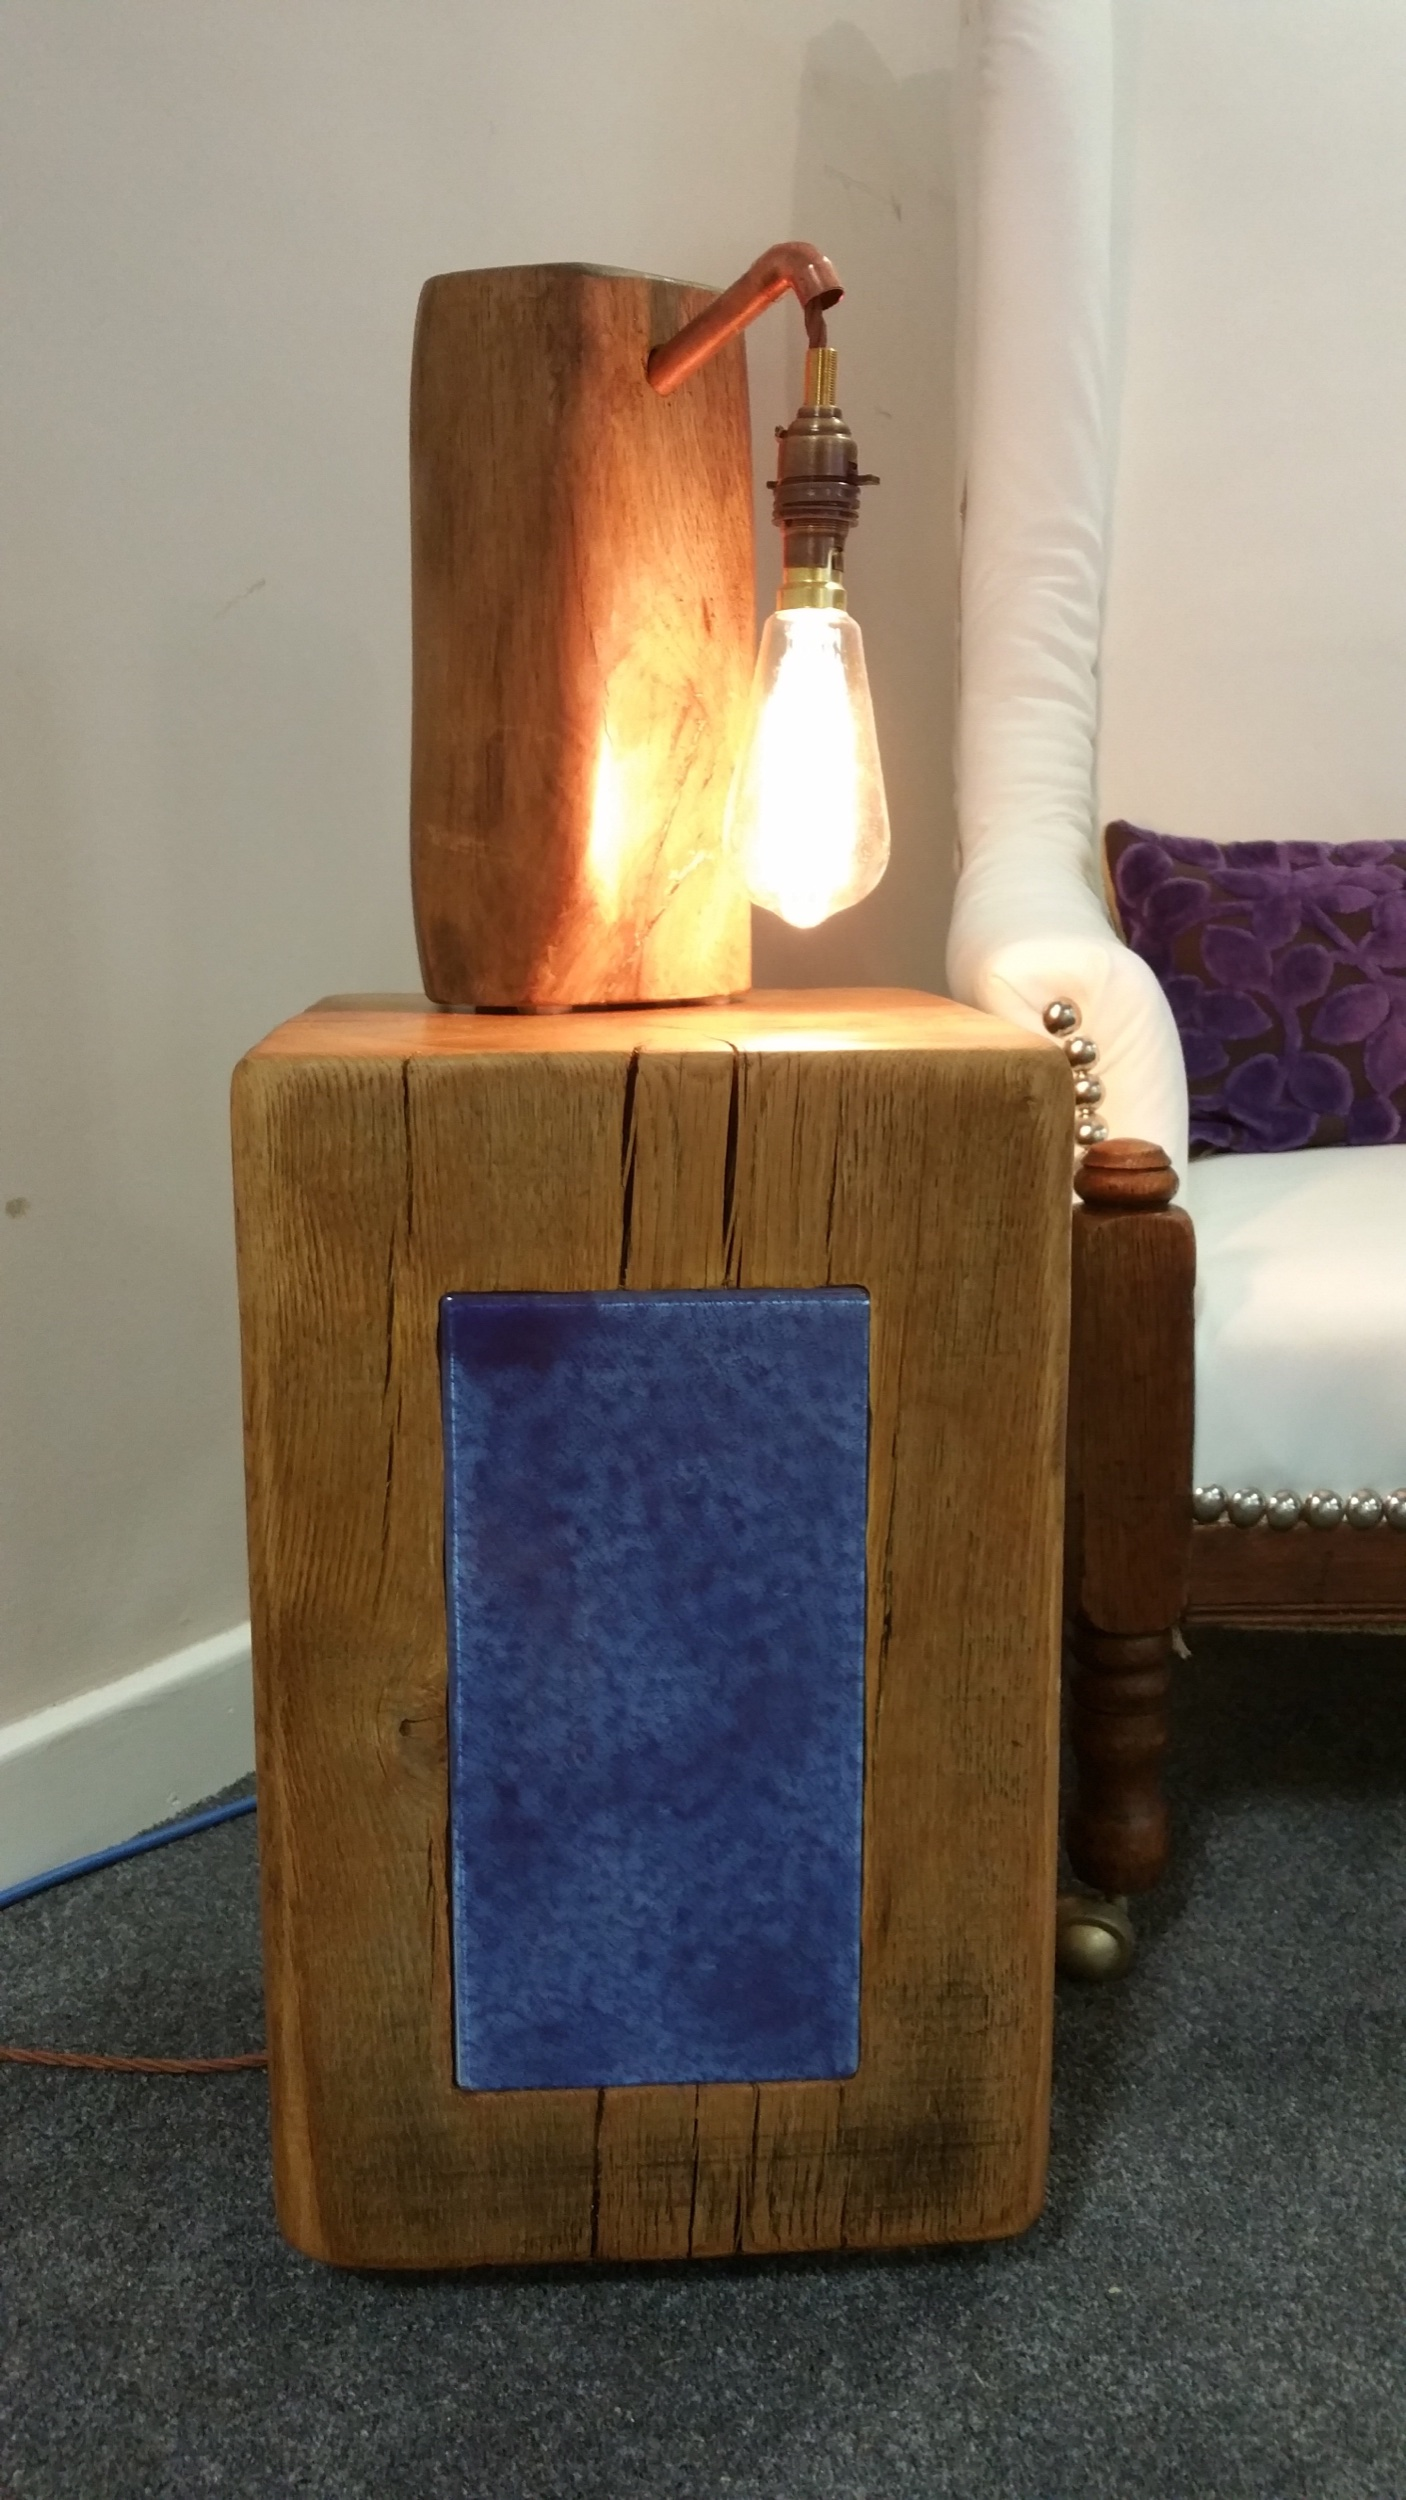 Front view of the oak side table with blue glass  insert